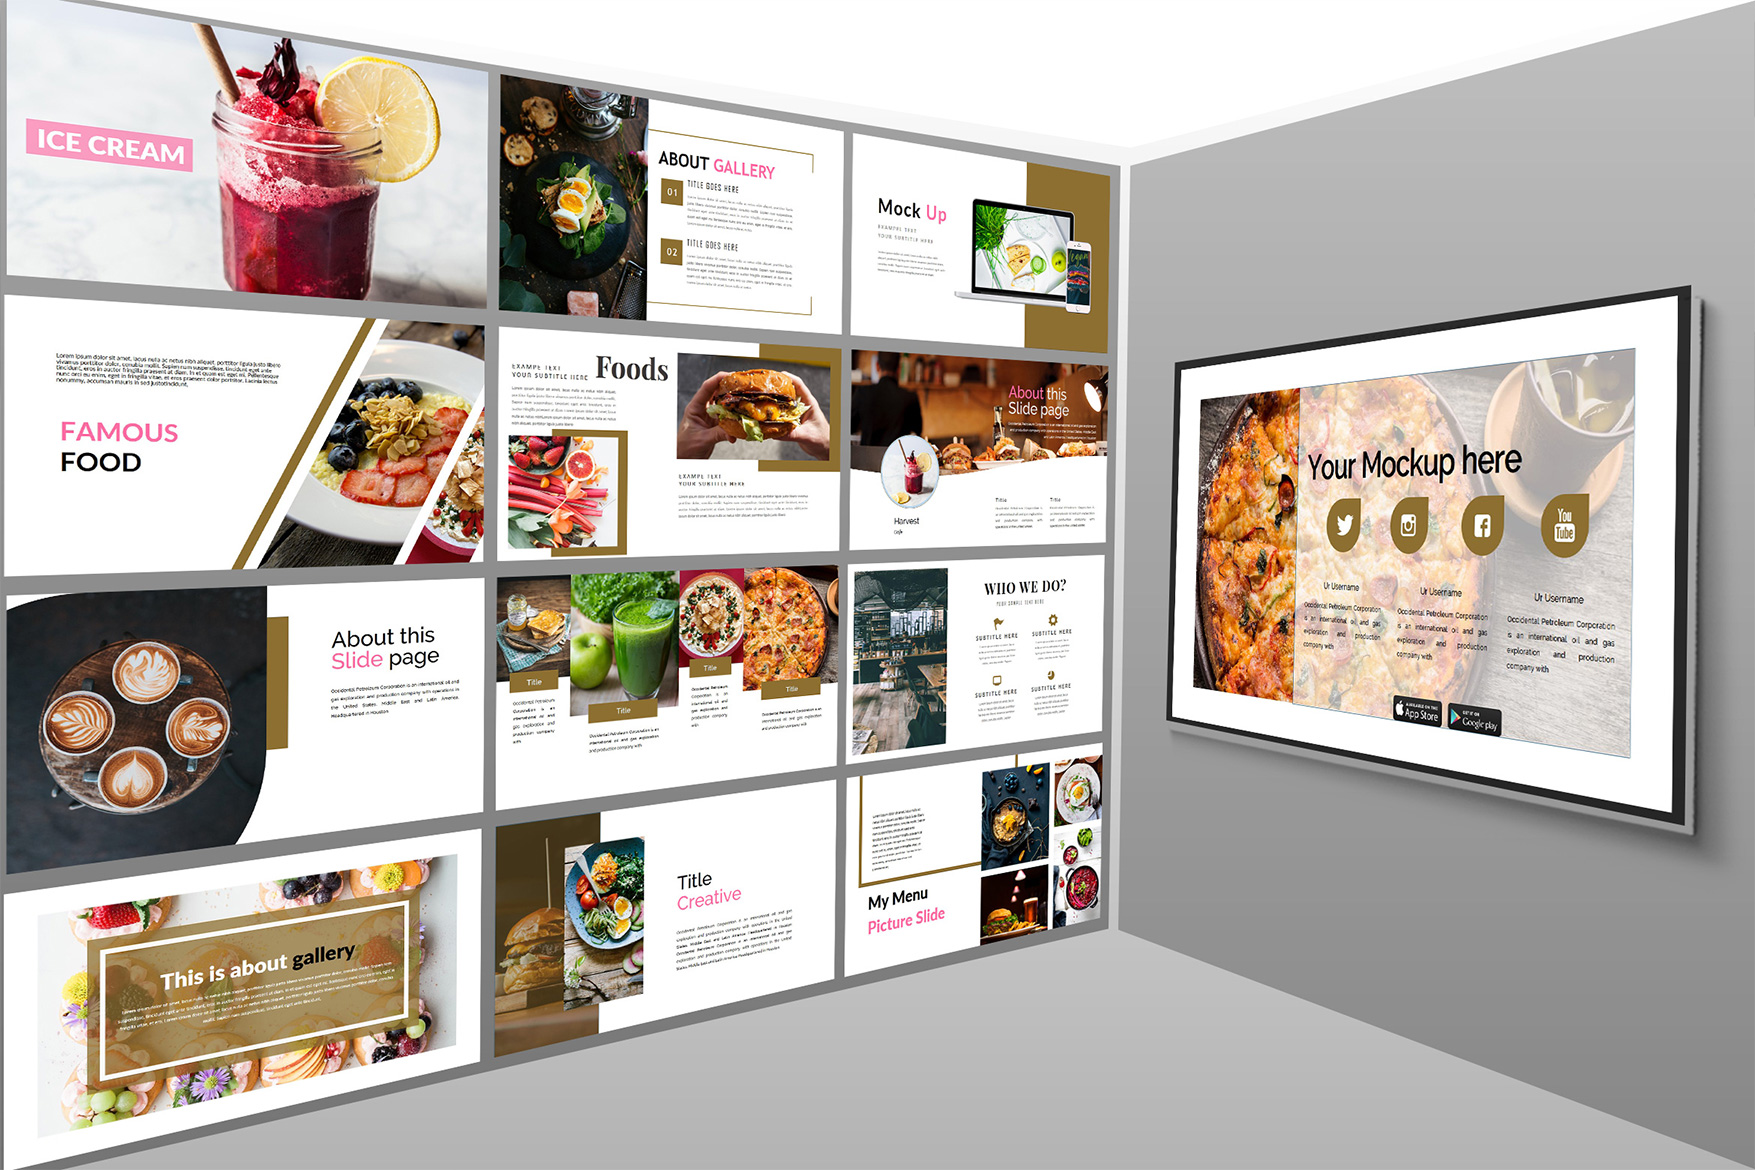 Delicious Food - Powerpoint Template example image 5